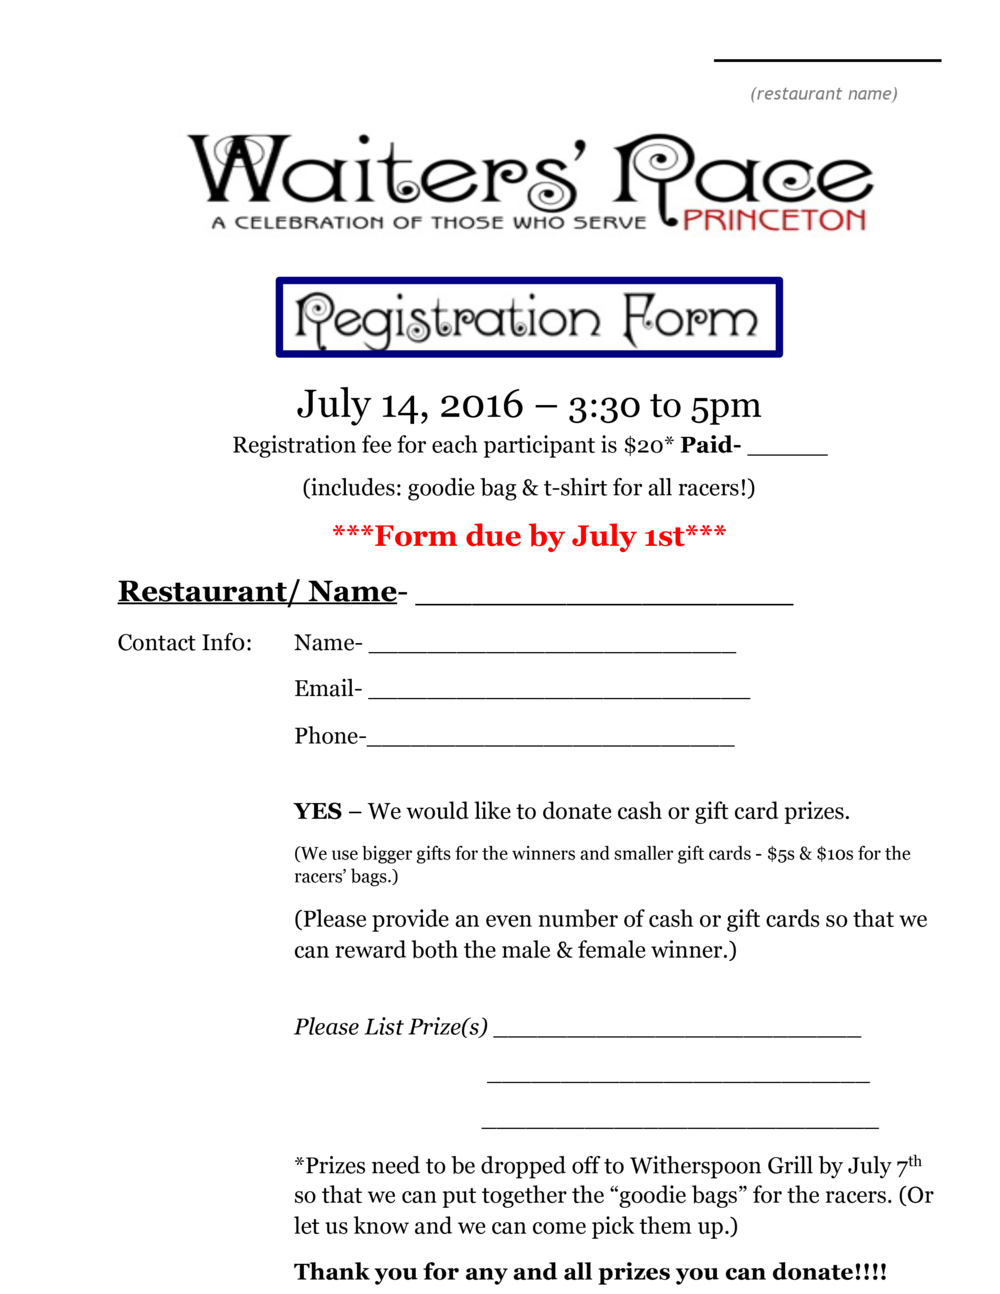 Racer Registration Form, page 1